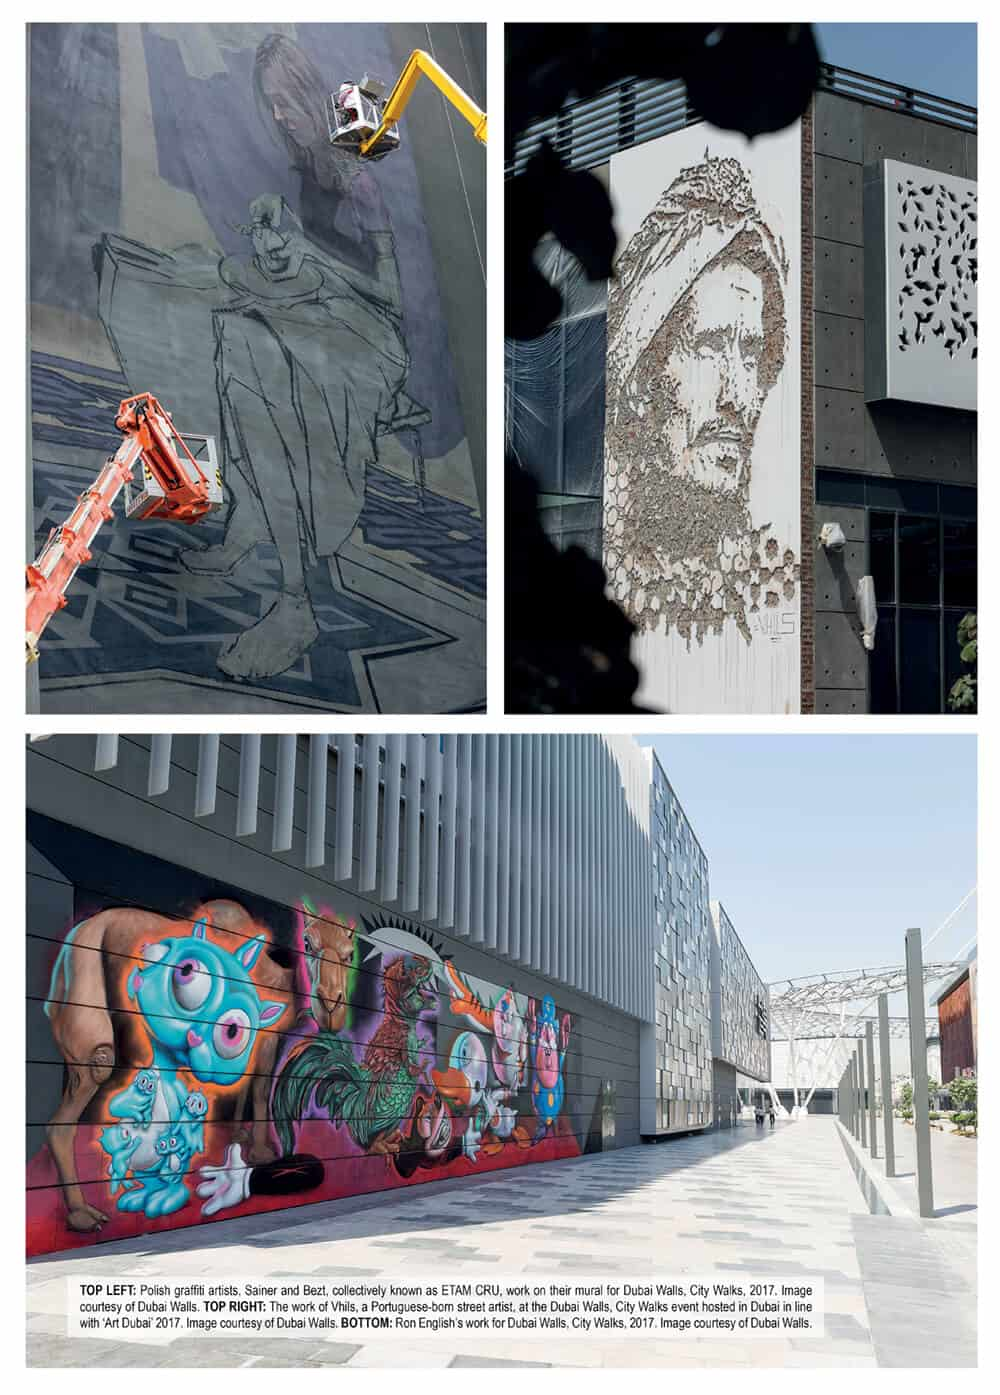 TOP LEFT: Polish graffiti artists, Sainer and Bezt, collectively known as ETAM CRU, work on their mural for Dubai Walls, City Walks, 2017. Image courtesy of Dubai Walls. TOP RIGHT: The work of Vhils, a Portuguese-born street artist, at the Dubai Walls, City Walks event hosted in Dubai in line with 'Art Dubai' 2017. Image courtesy of Dubai Walls. BOTTOM: Ron English's work for Dubai Walls, City Walks, 2017. Image courtesy of Dubai Walls.